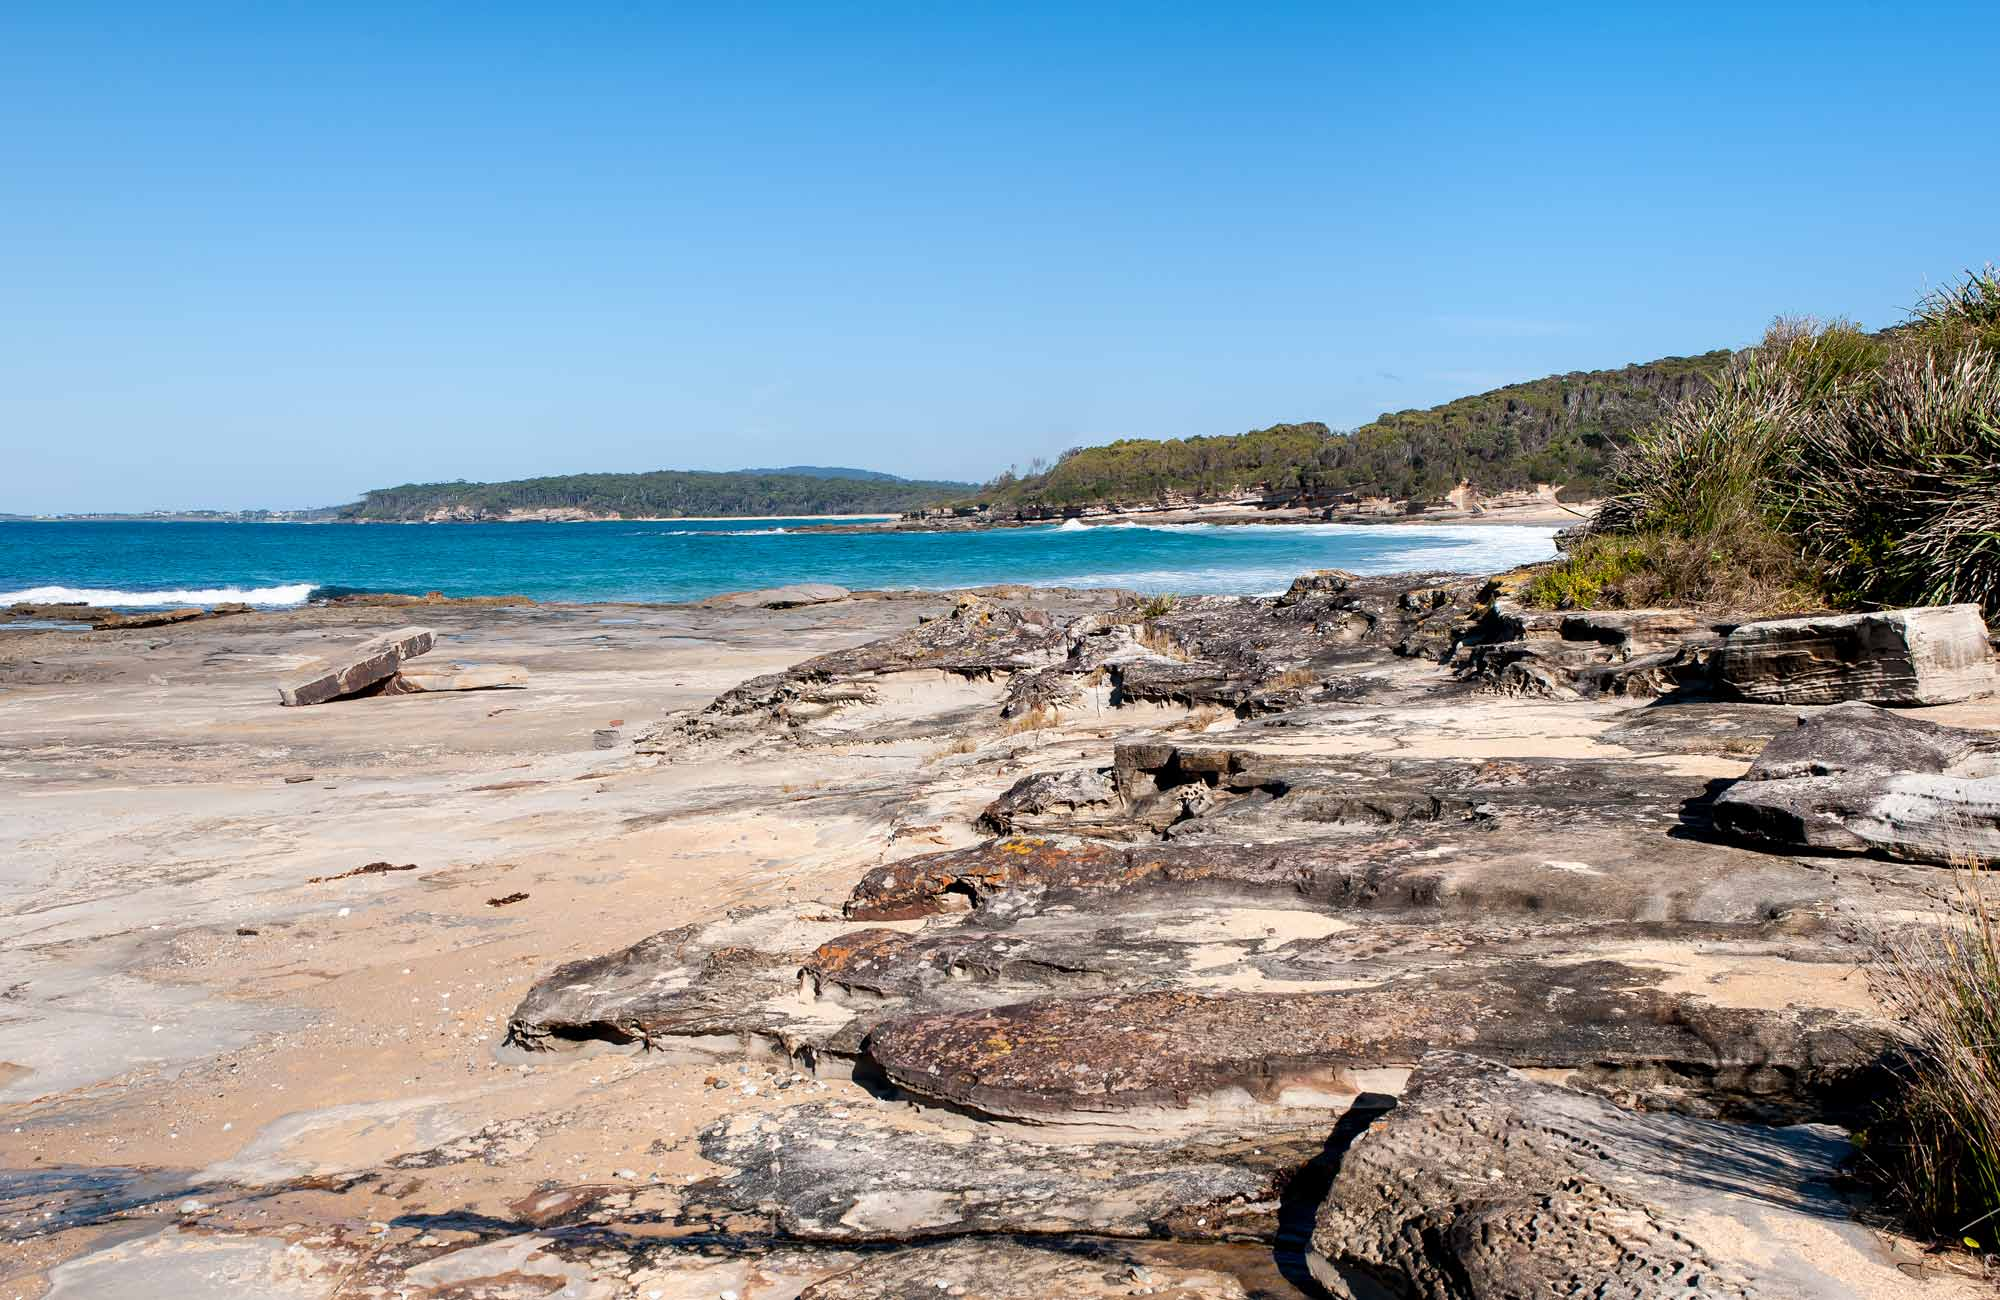 Sunburnt Beach campground, Meroo National Park. Photo: Michael van Ewijk